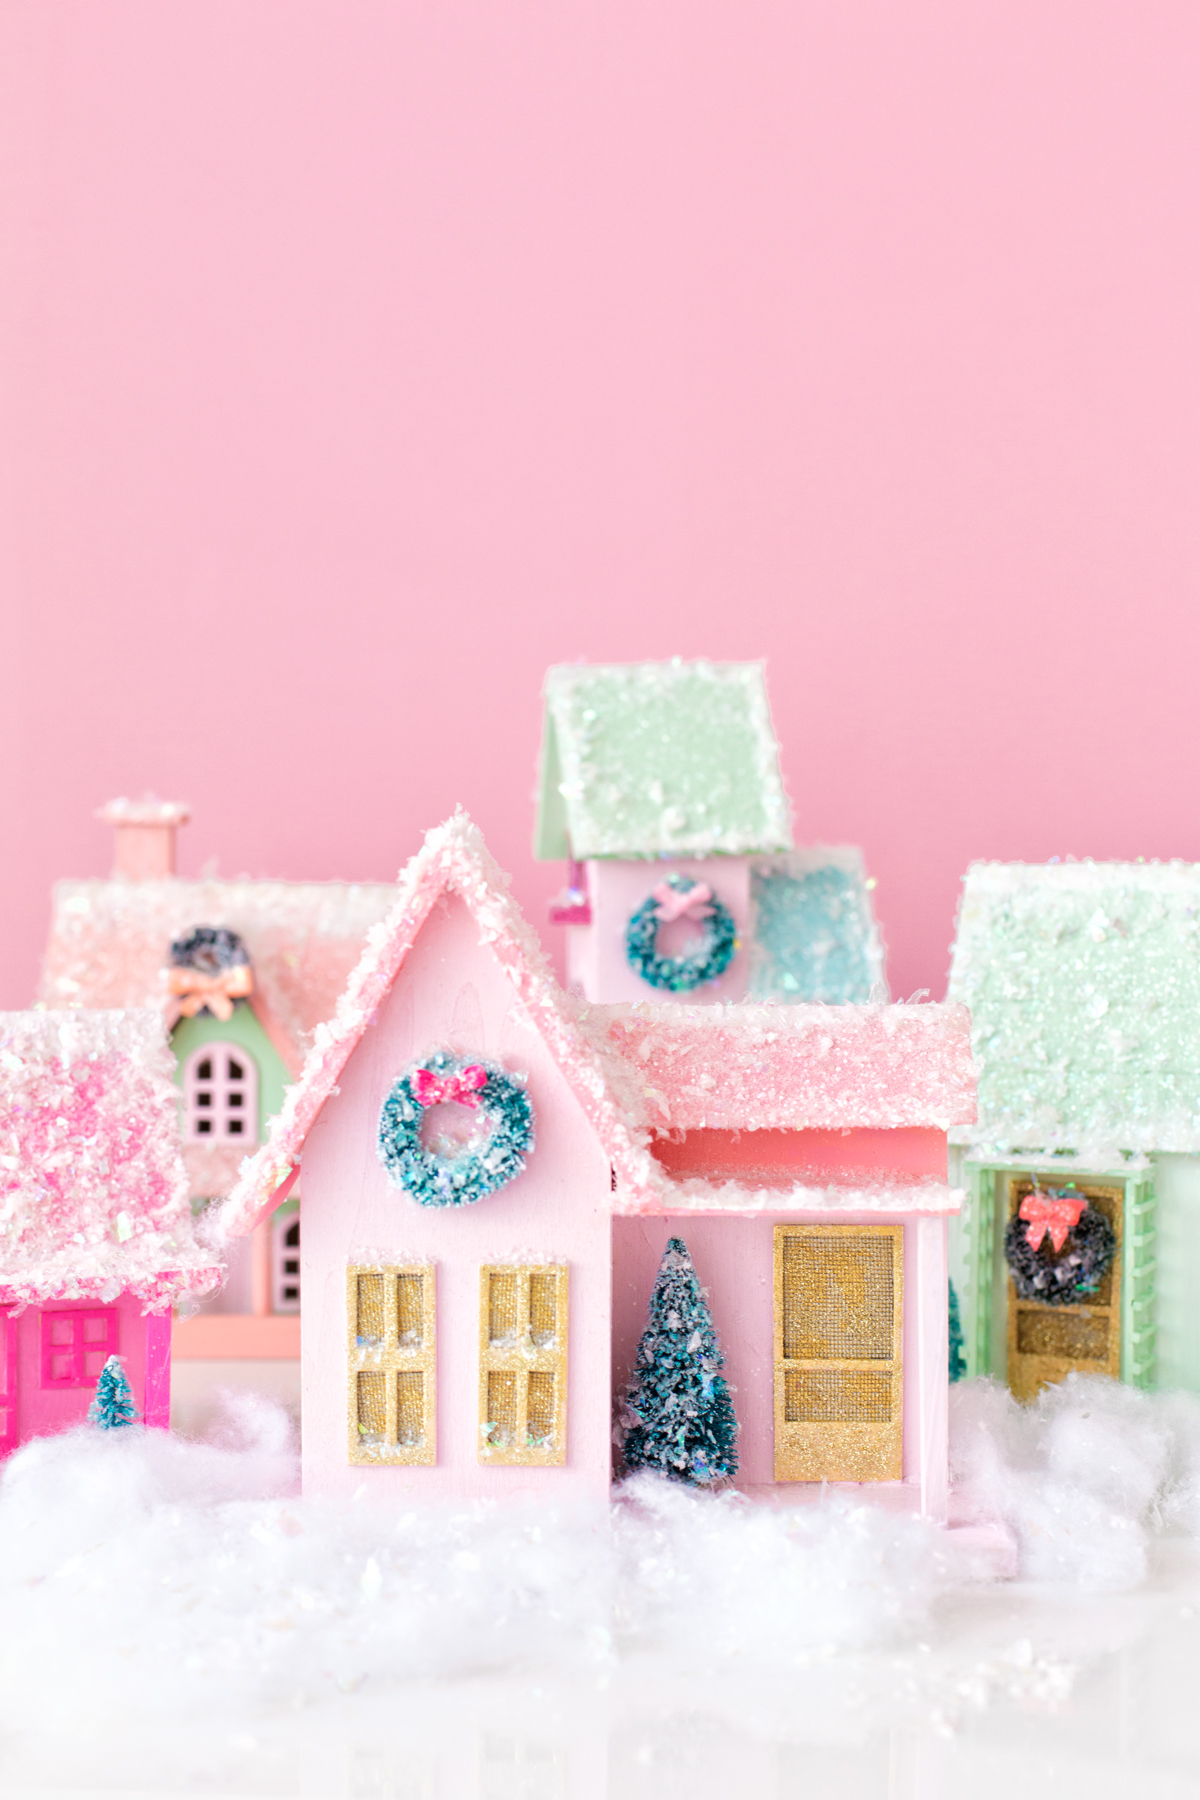 Colorful DIY Christmas village